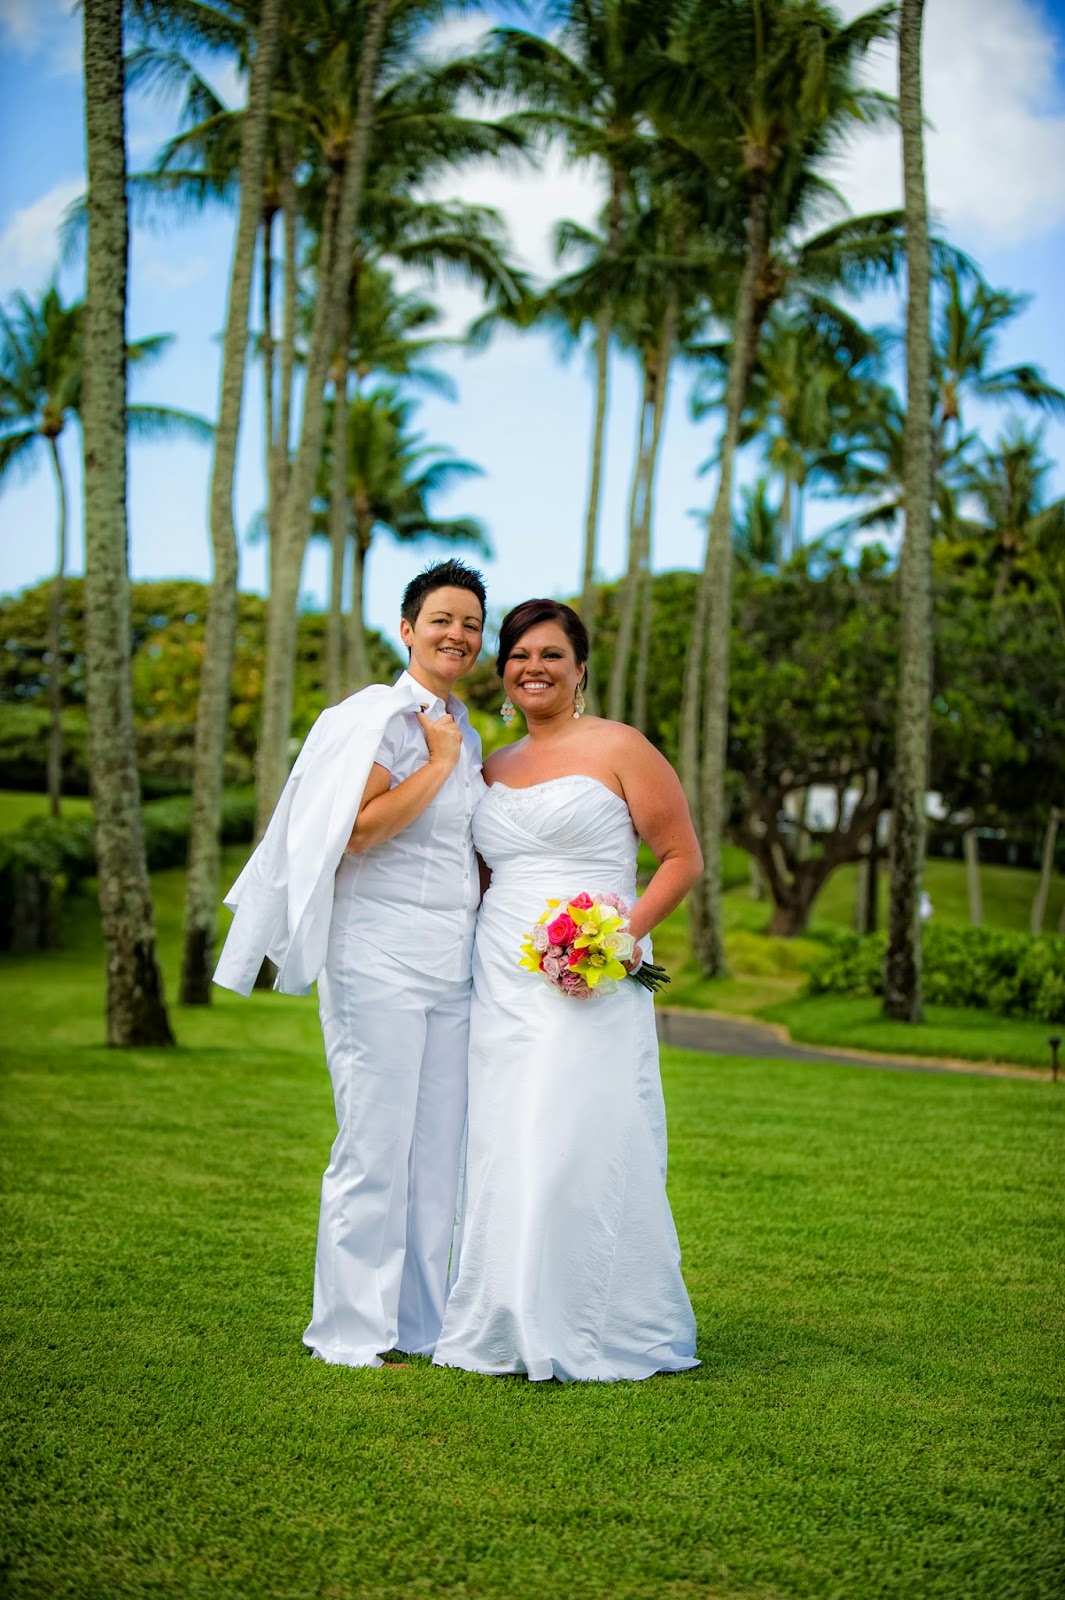 maui gay weddings, maui gay wedding planners, maui gay wedding photographers, maui gay wedding kapalua